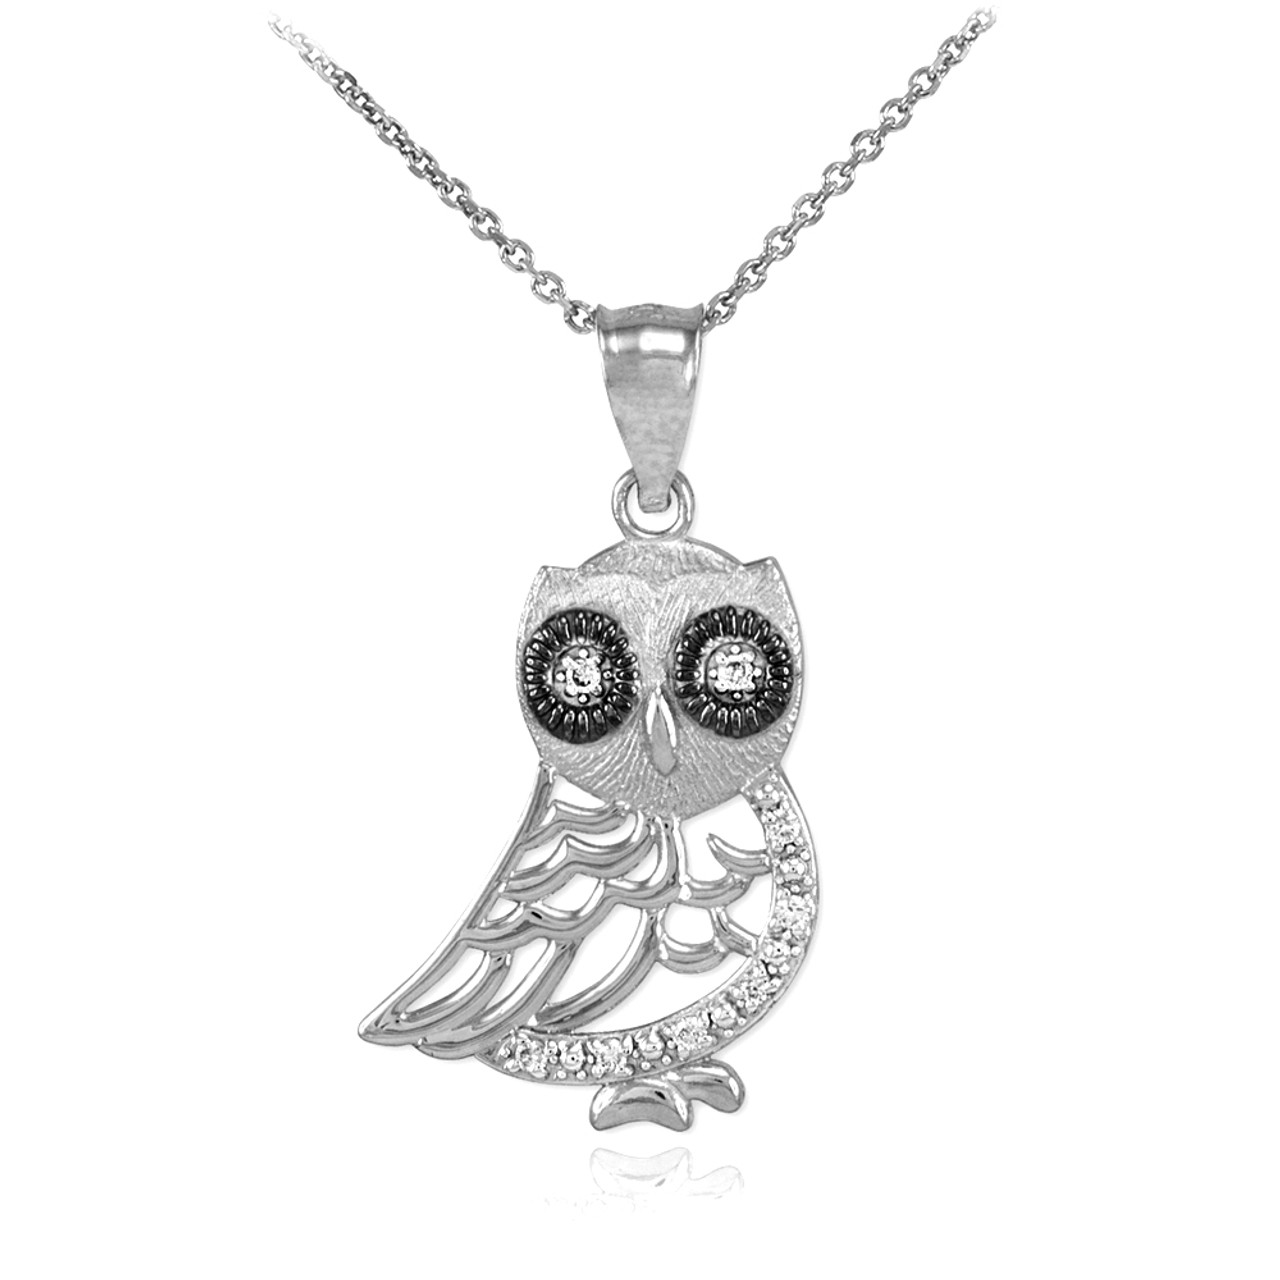 Polished white gold owl pendant with diamonds polished white gold owl pendant necklace with diamonds aloadofball Image collections